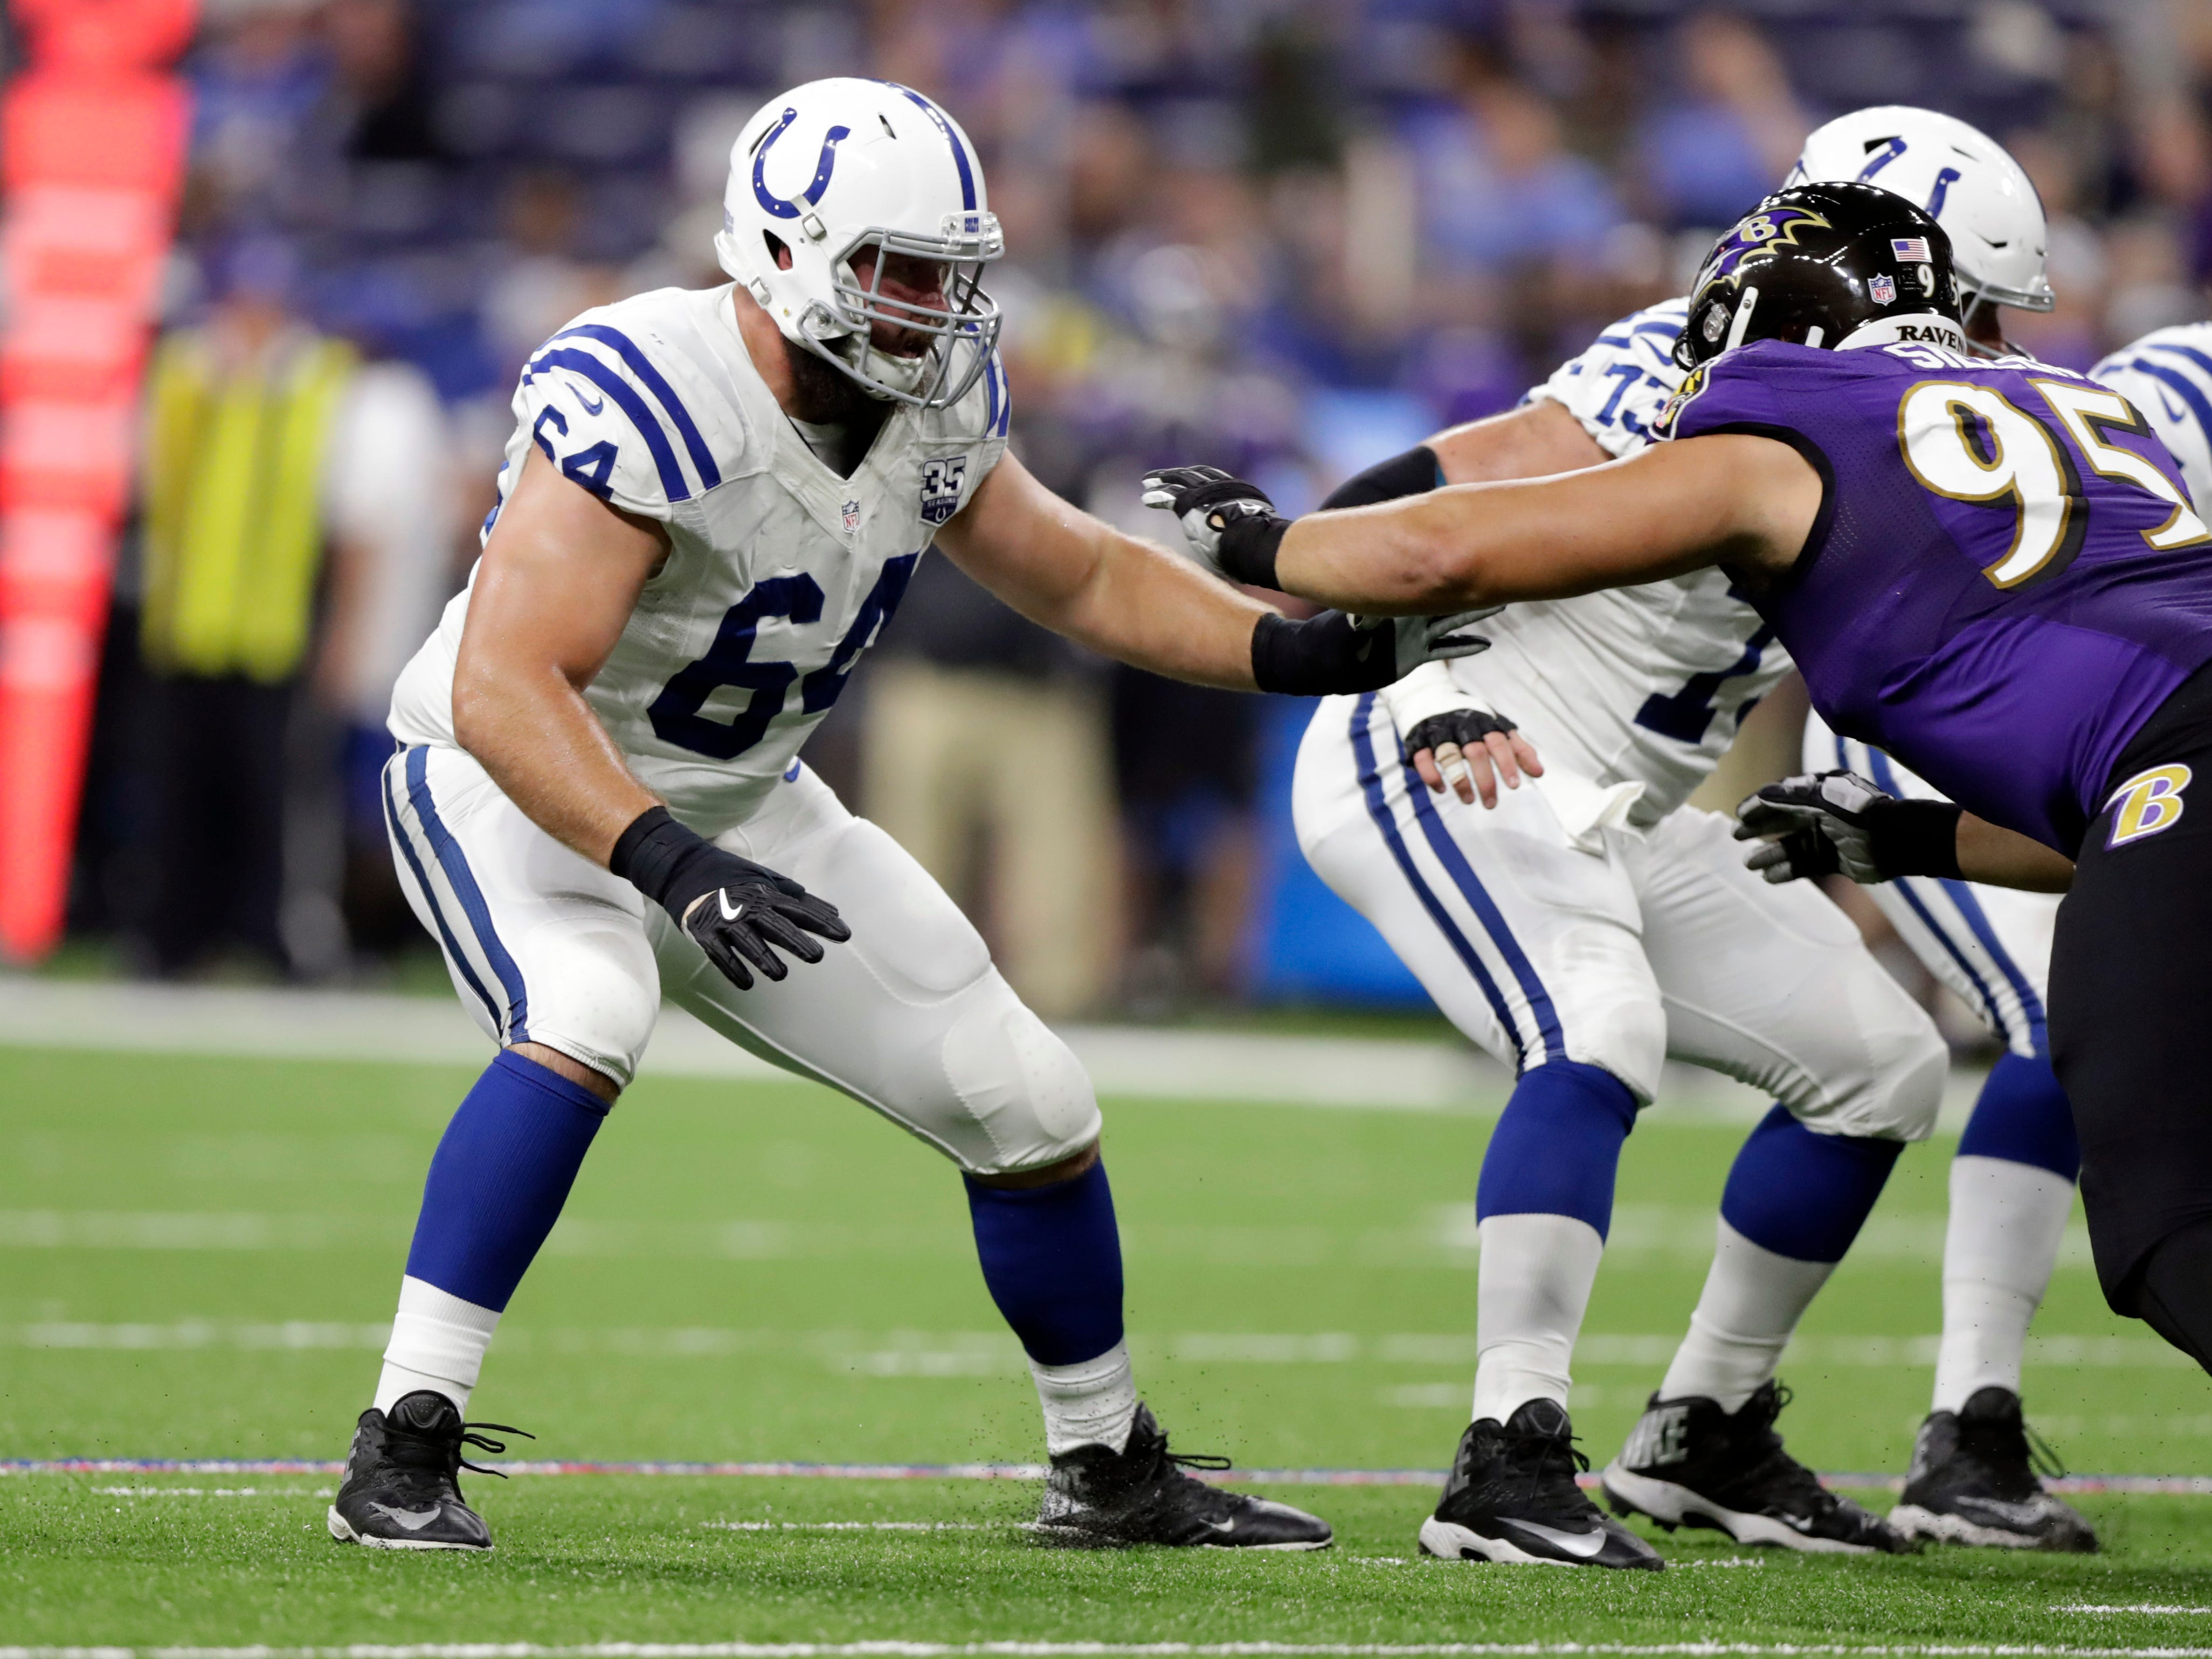 Mark Glowinski, G, Indianapolis: Seattle ran out of patience with the former fourth-round pick, but Glowinski delivered a solid performance for the Colts in 2018, allowing just 11 pressures and no sacks in 11 games (nine starts).